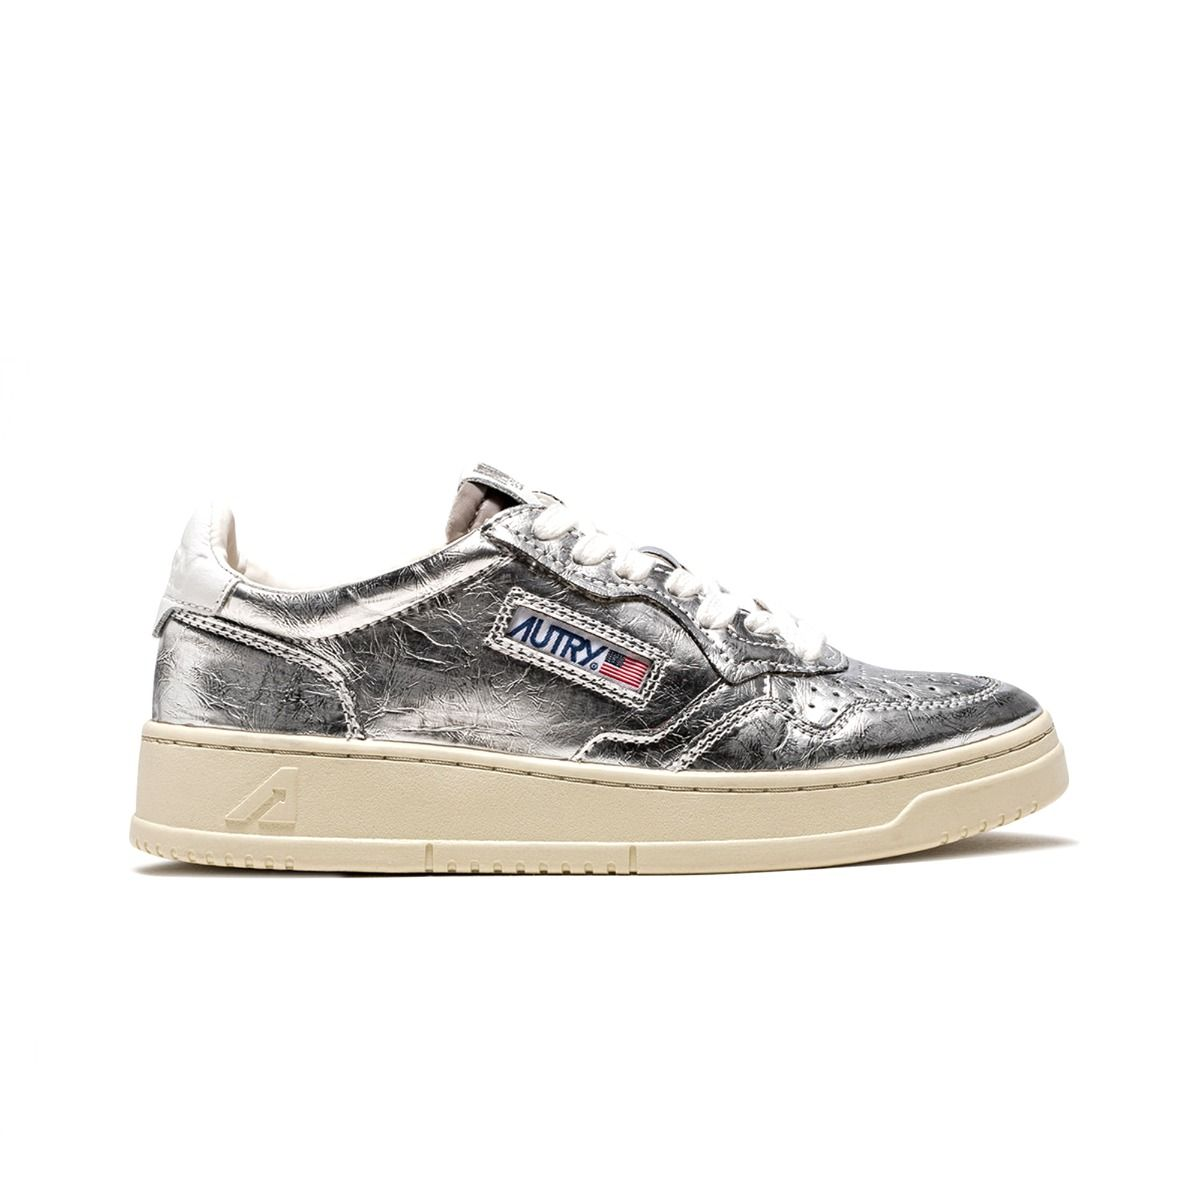 autry low donna sneakers AULWLM01